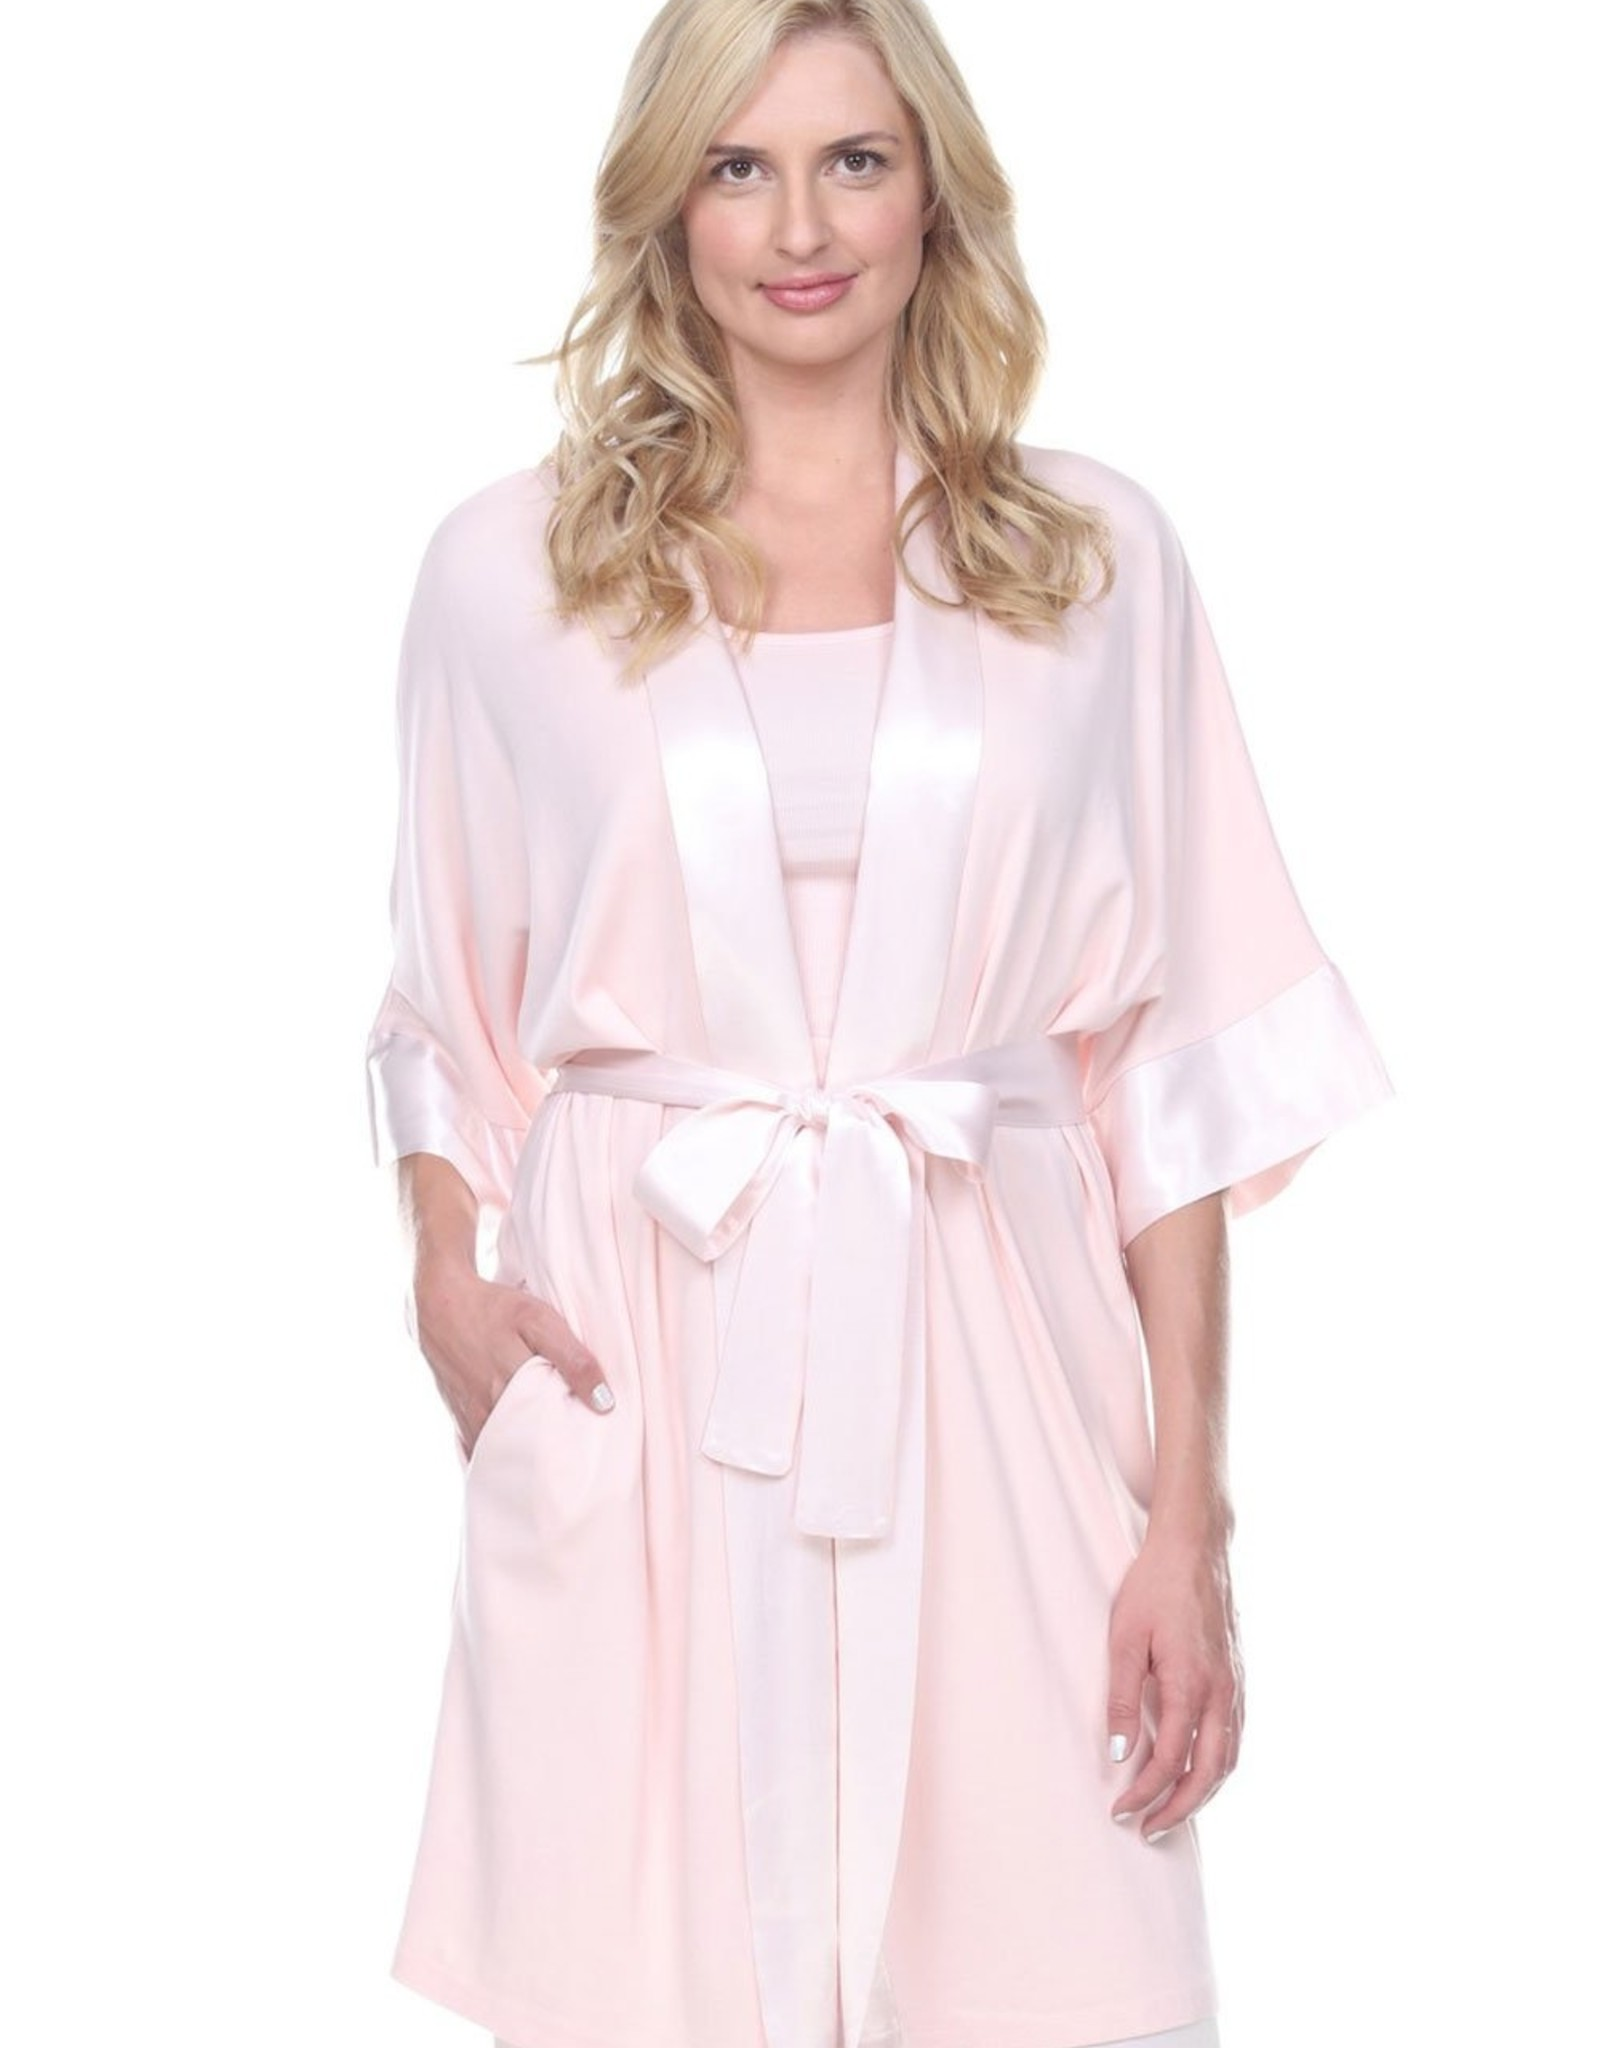 PJ Harlow Shala Robe With Attached Belt